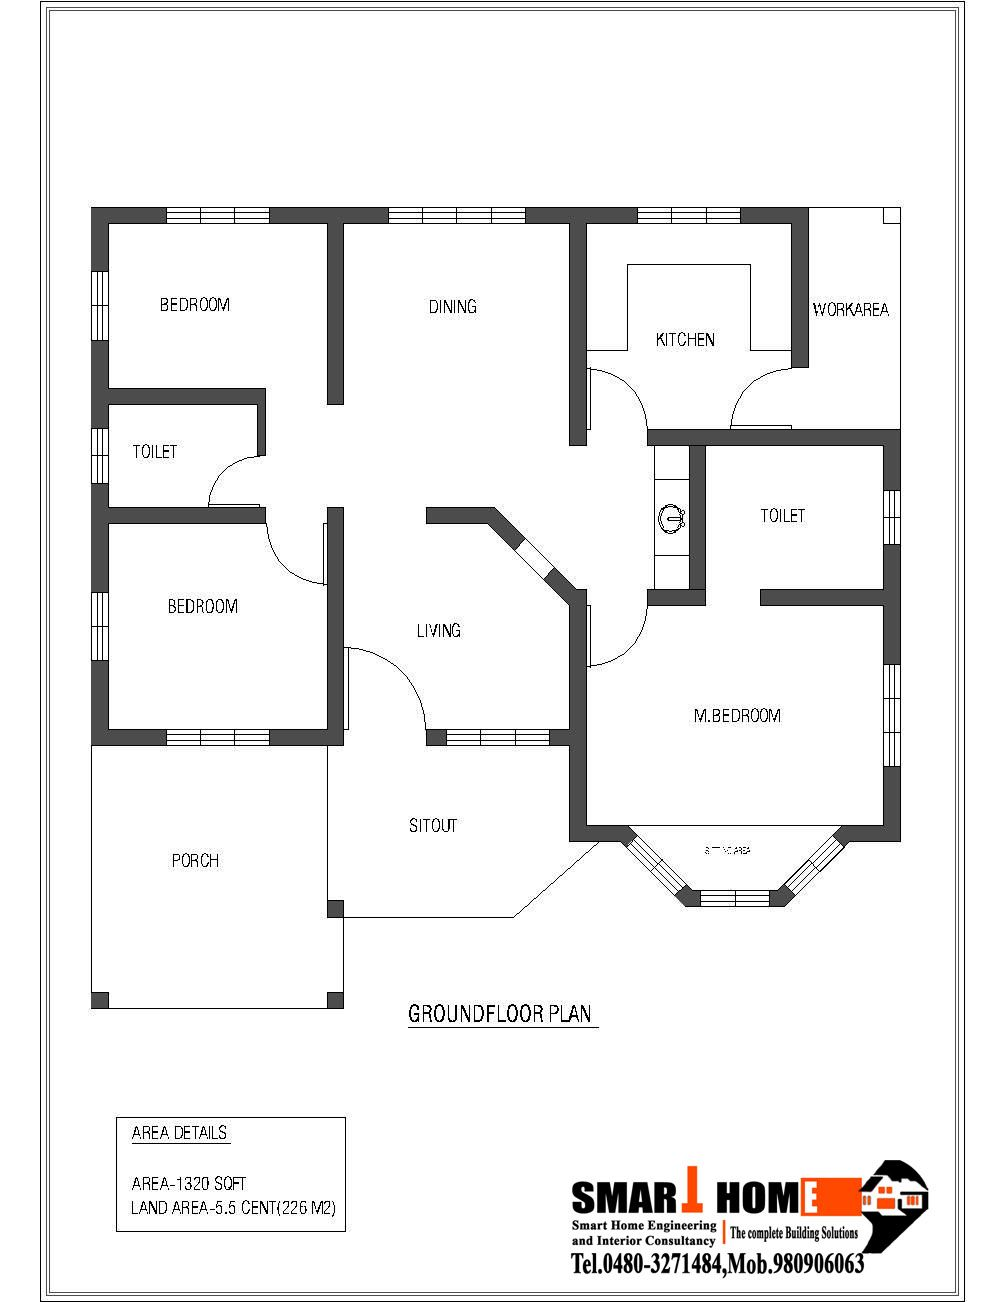 1320 sqft kerala style 3 bedroom house plan from smart for 3 bedroom house plans